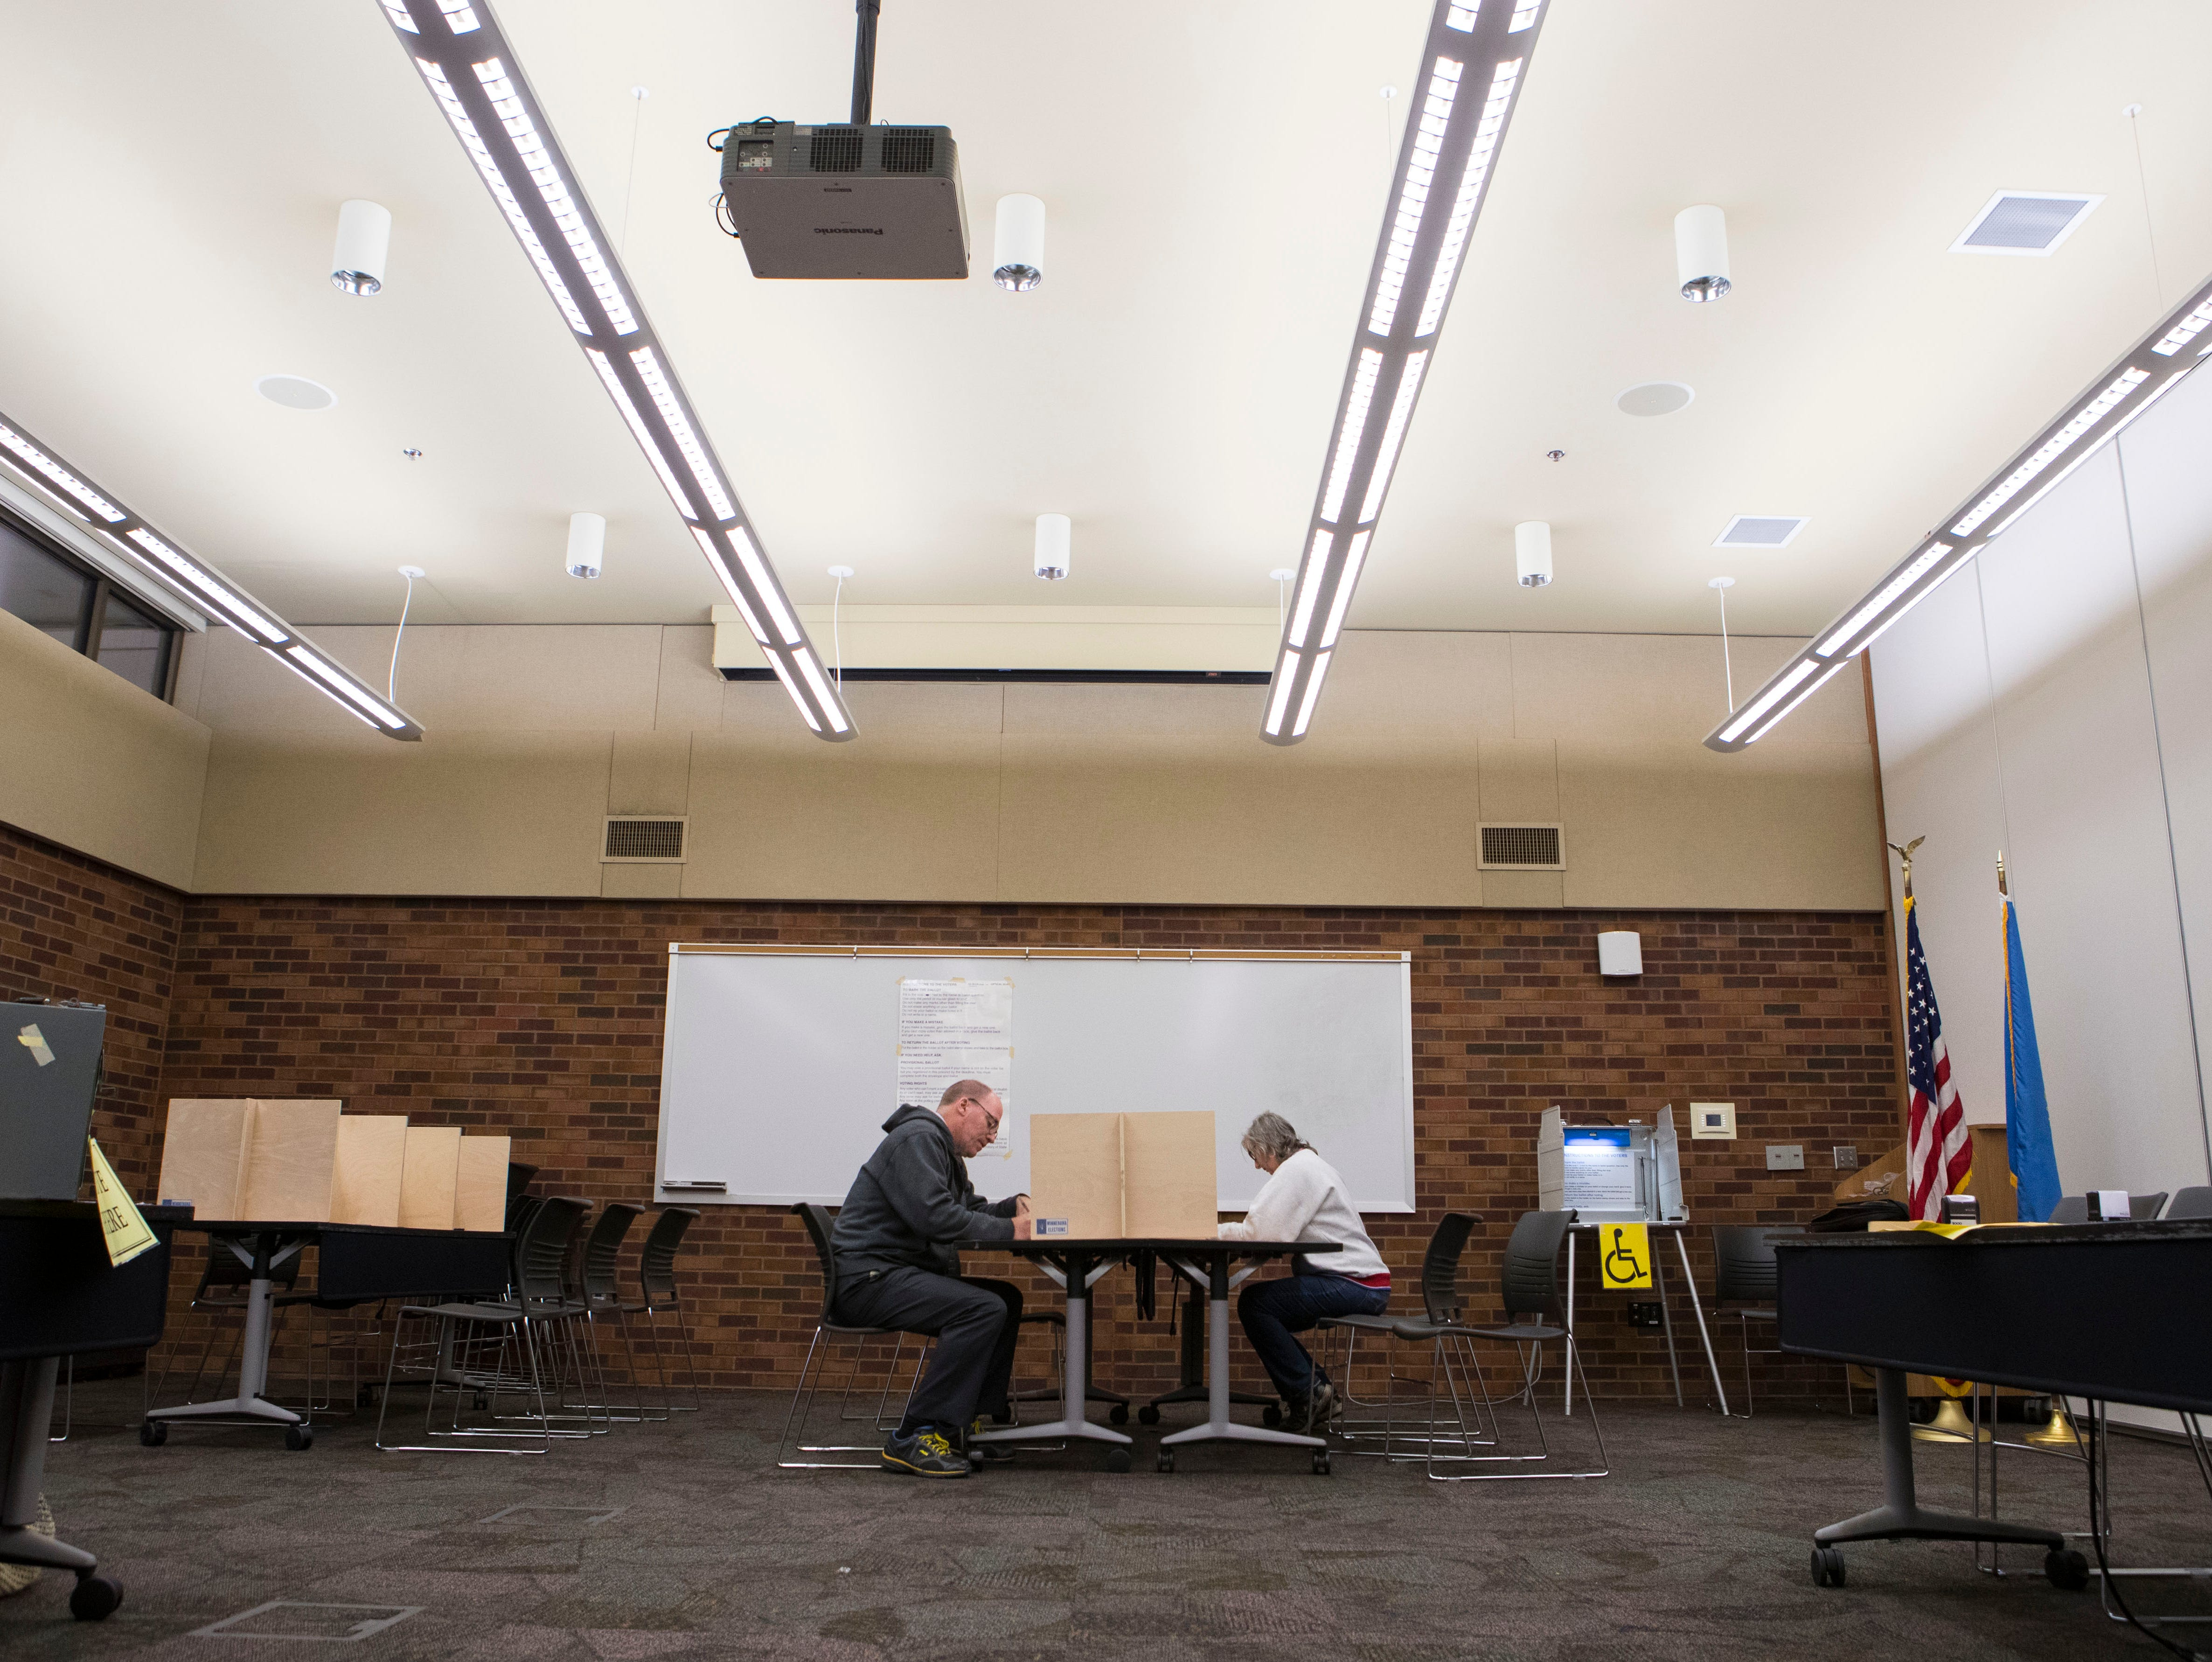 Sioux Falls residents fill out their ballots at the Downtown branch of the Siouxland Libraries in Sioux Falls, S.D., Tuesday, Nov. 6, 2018.